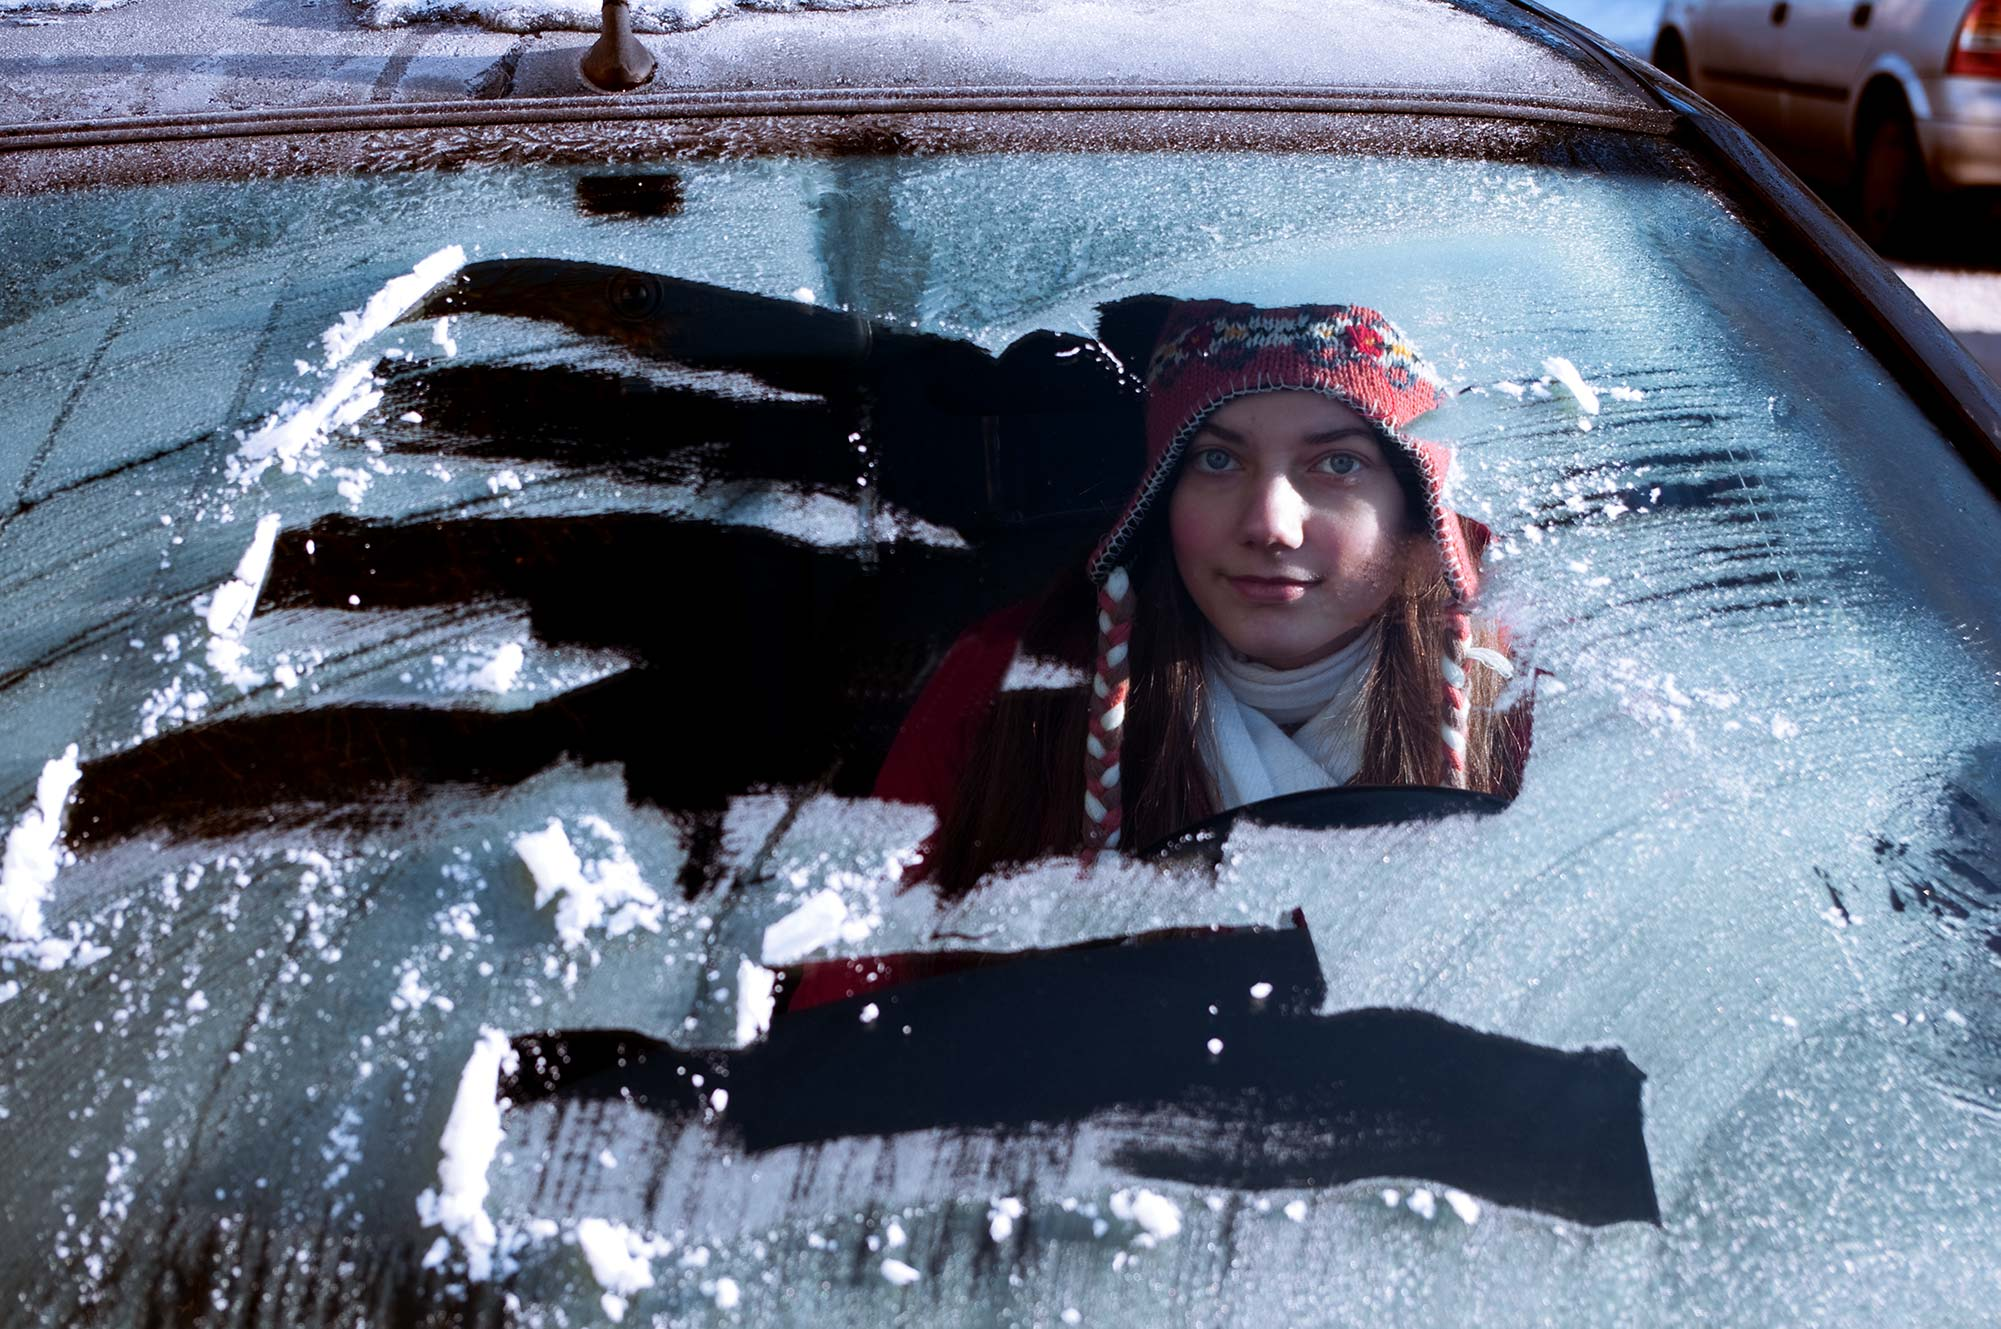 Young female driving a car, but did not scrap all of the snow off of the windshield.>From Media Library>From Media Library>From Media Library>From Media Library>From Media Library>From Media Library>From Media Library